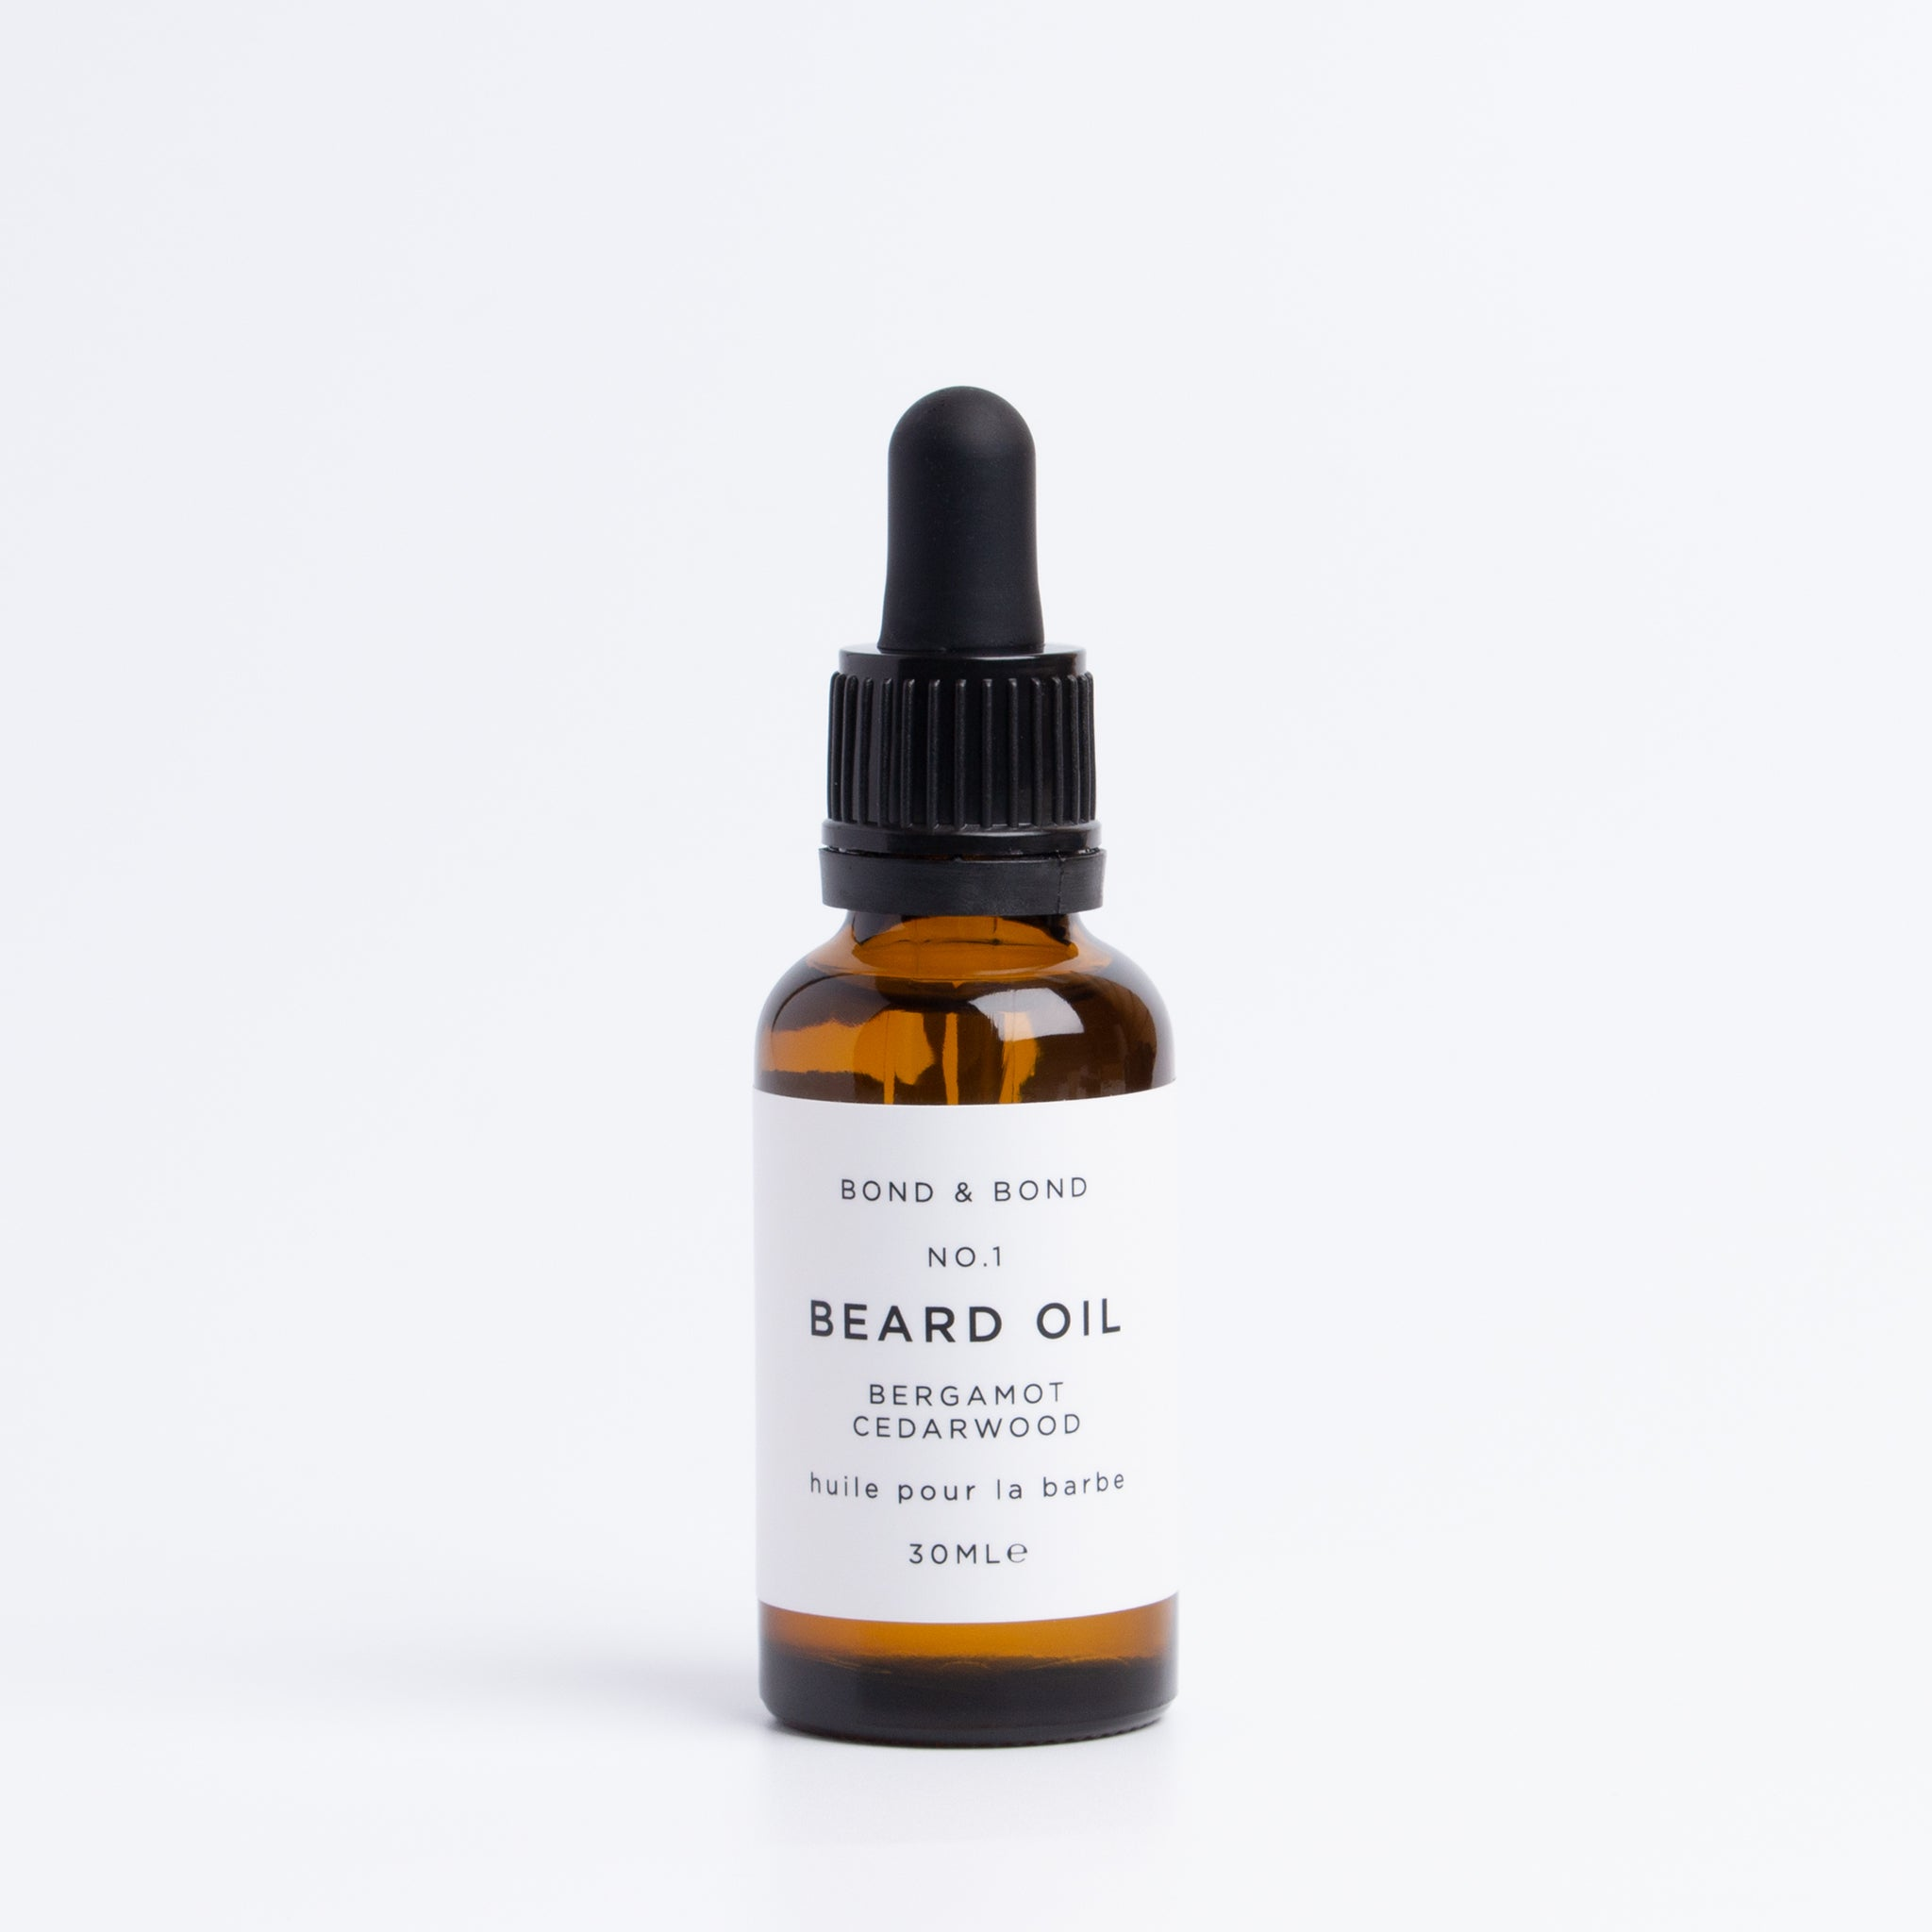 Nathalie Bond Beard Oil